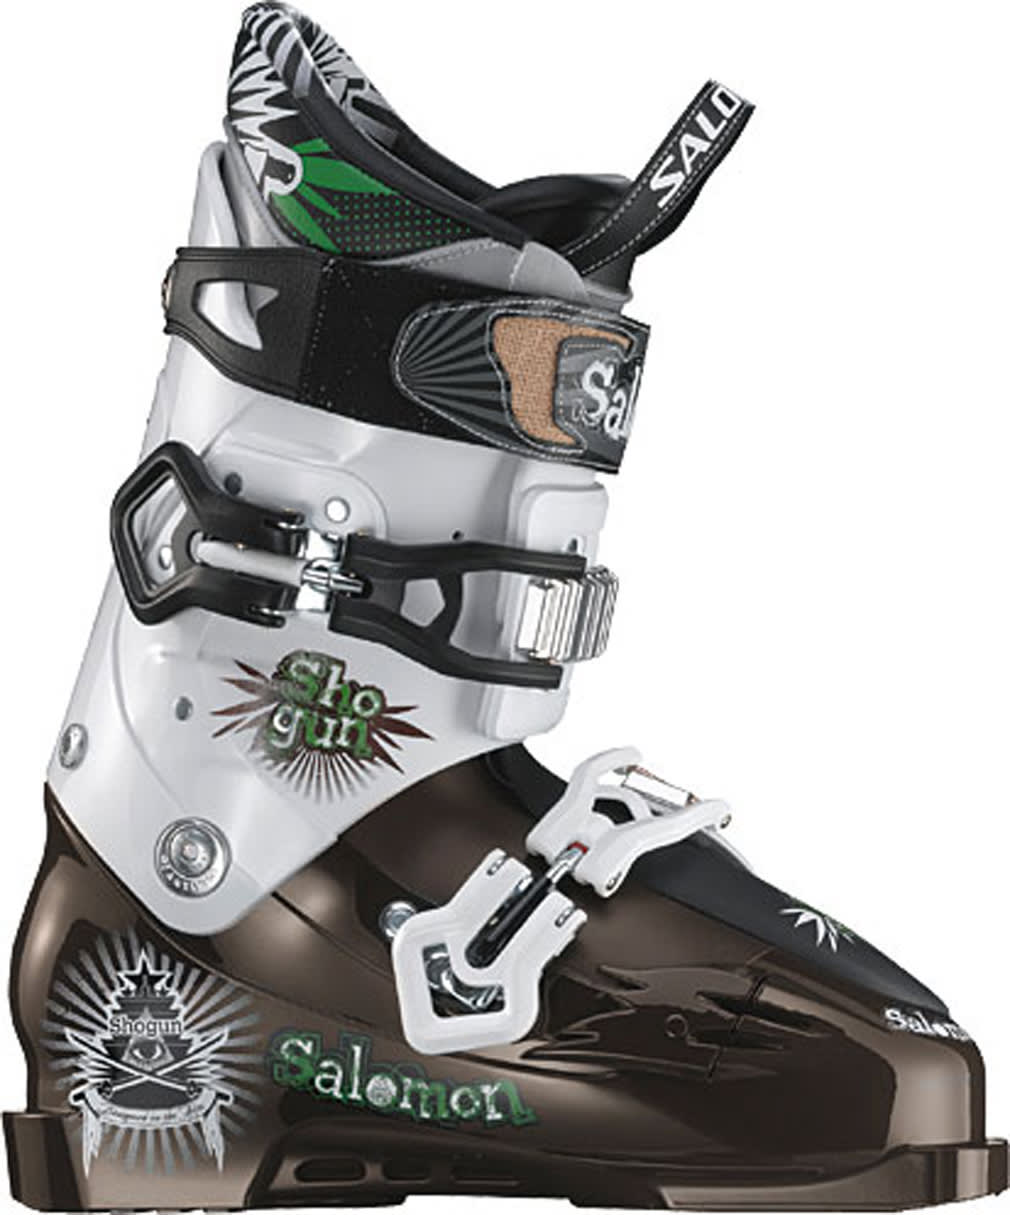 Shop for Salomon Shogun Ski Boots Brown/White - Men's